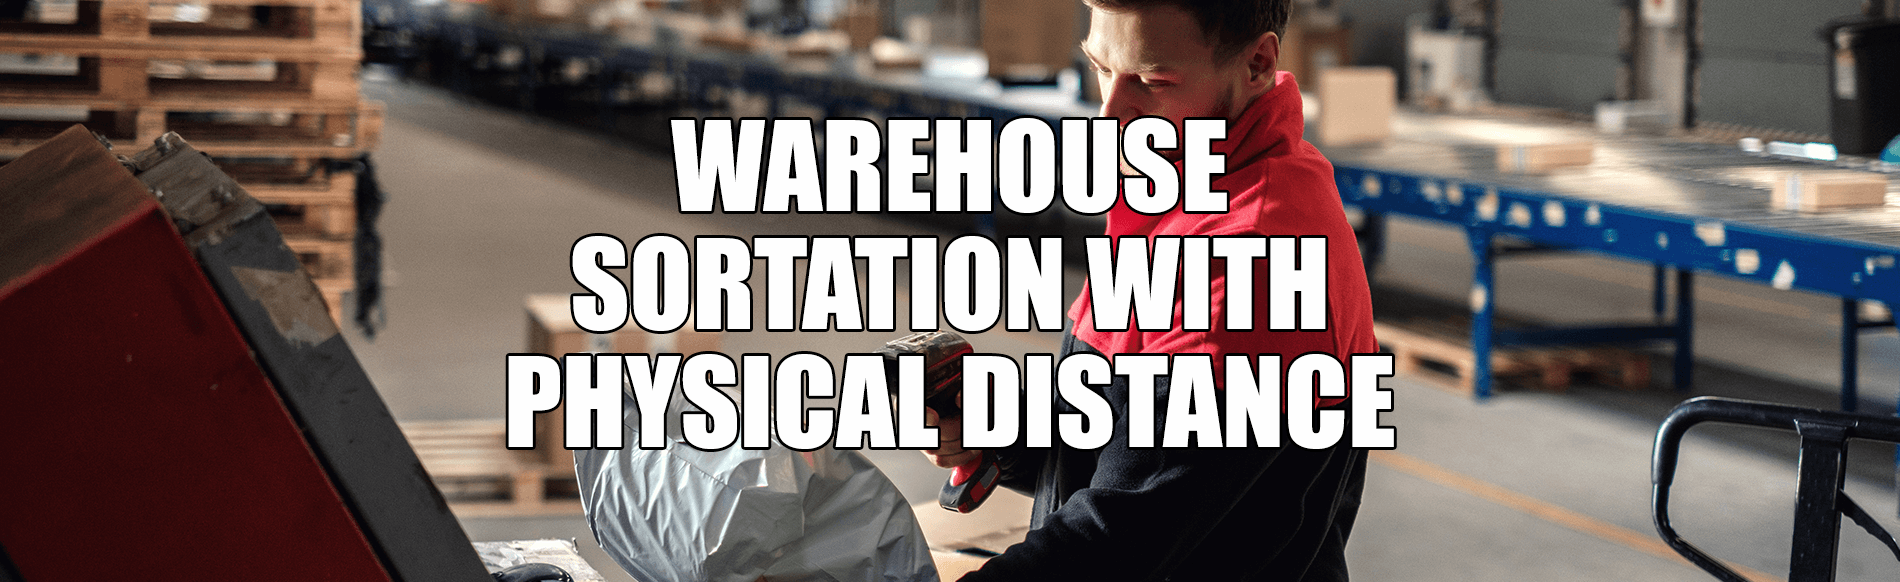 Warehouse Sortation with Physical Distancing